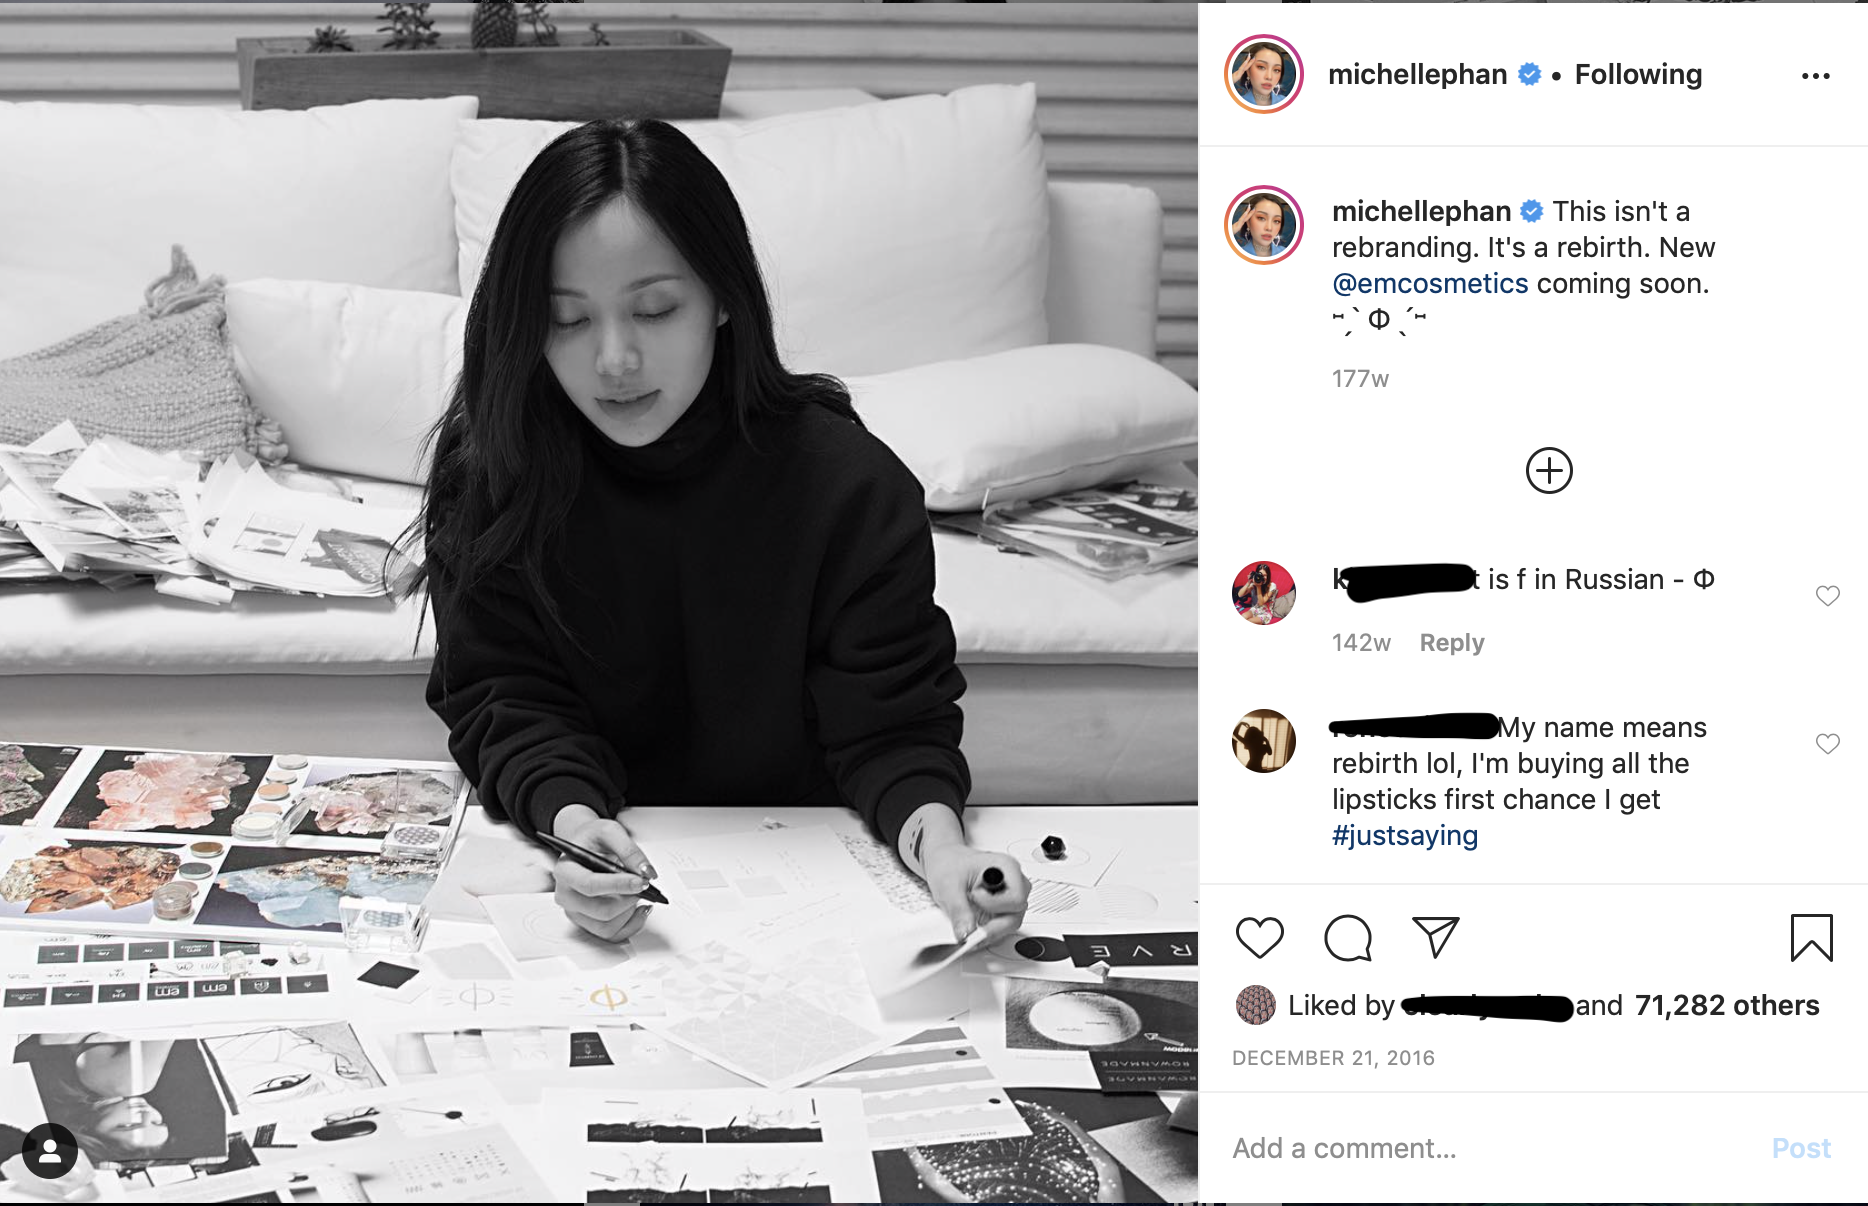 Michelle Phan during em cosmetics rebranding process